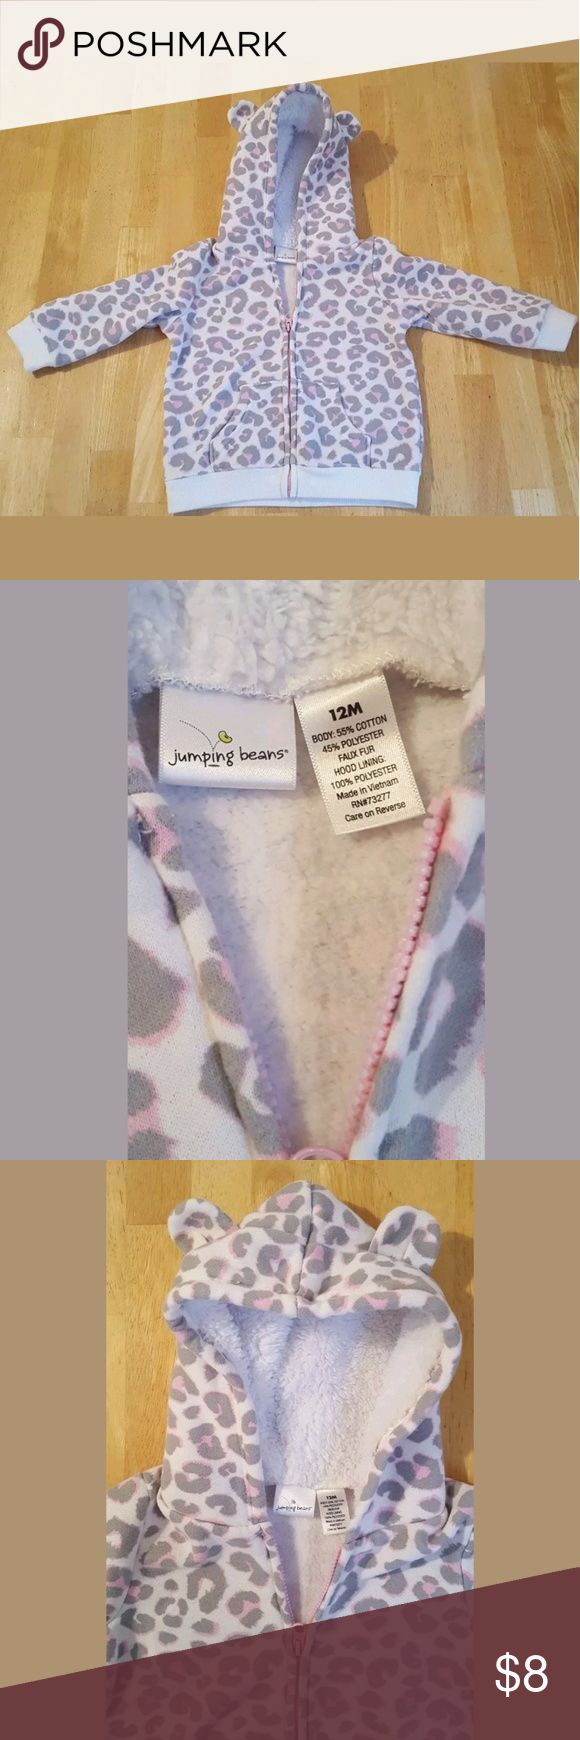 Girls 12 Month Hoodie Animal Print Listed is a girls 12 month zip up hoodie by Jumping Beans.  Hoodie features a faux fur lined hood with little ears on the top.  Hoodie is in great condition. No stains, tears or holes. Jumping Beans Shirts & Tops Sweatshirts & Hoodies